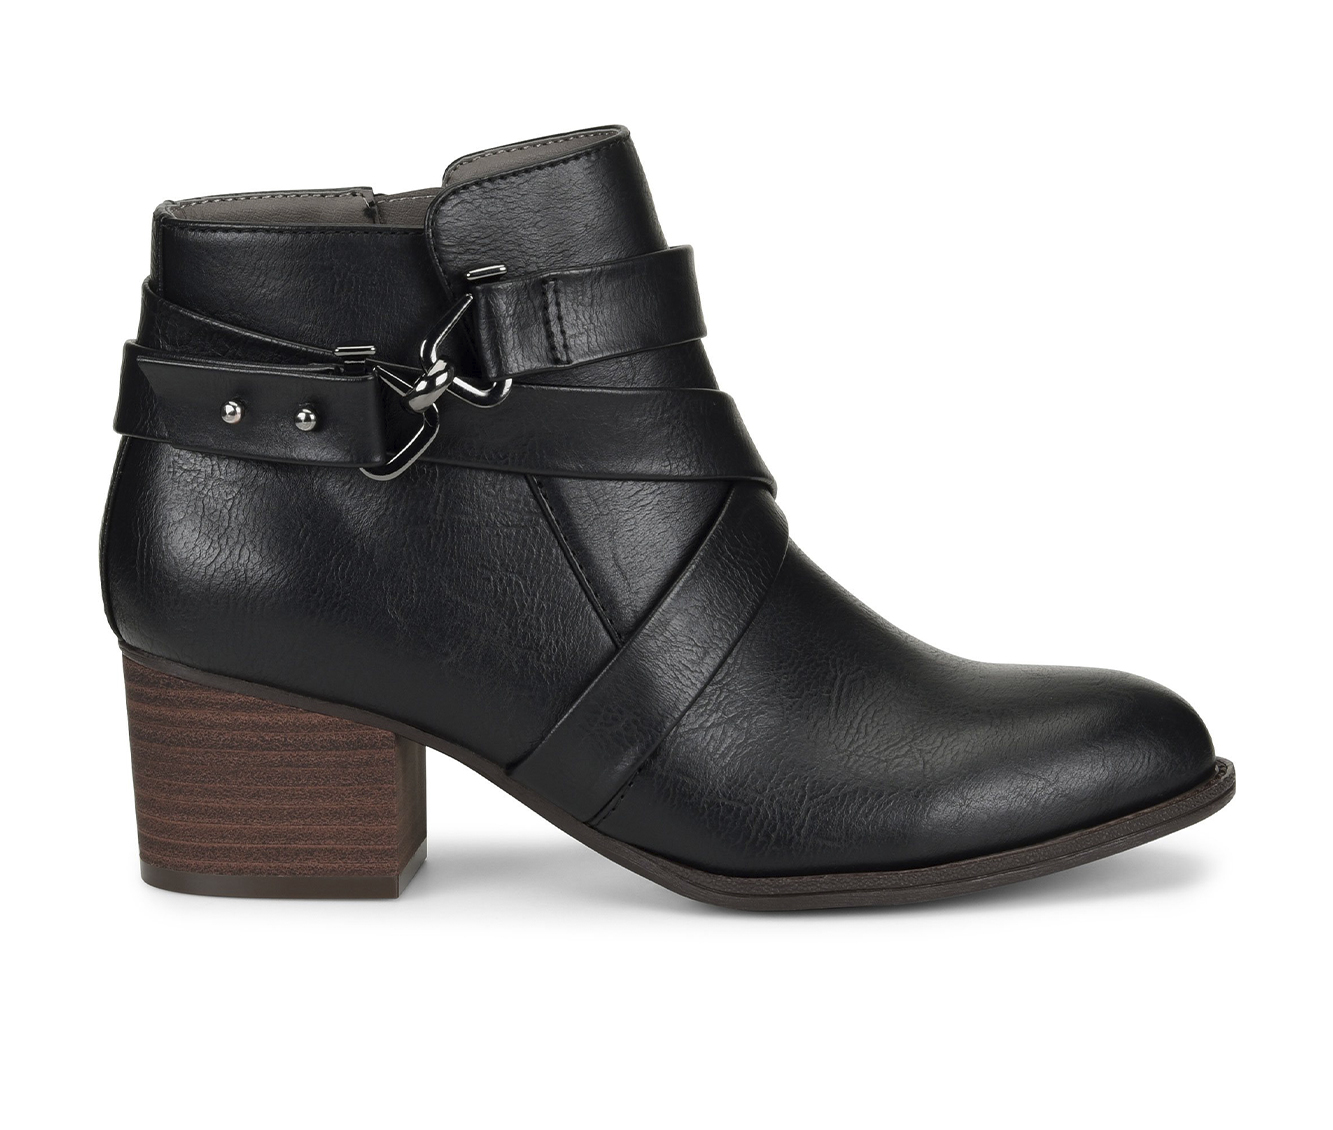 EuroSoft Witlee Women's Boots (Black - Faux Leather)